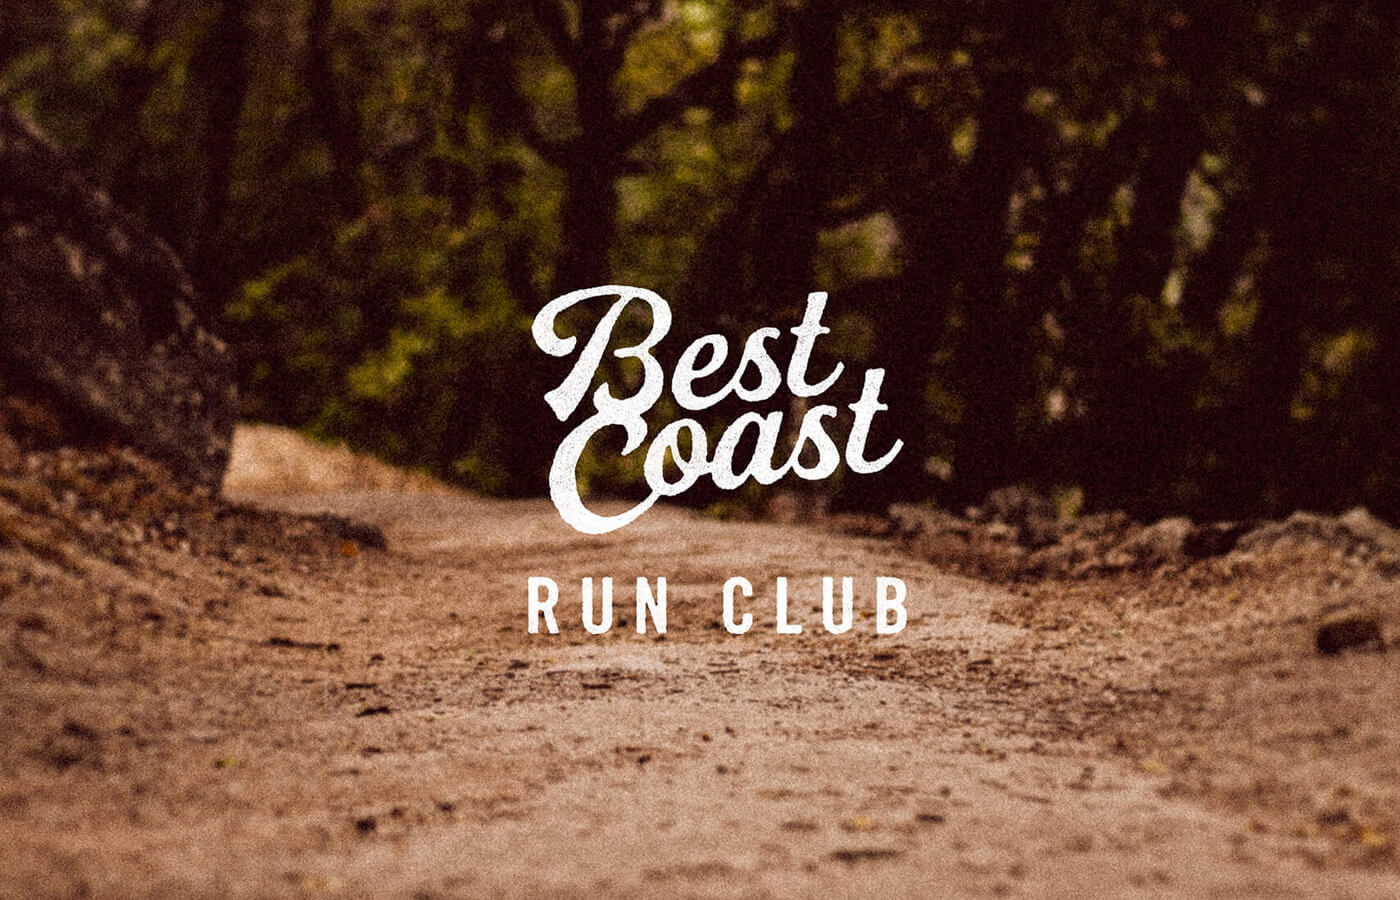 Best Coast Run Club